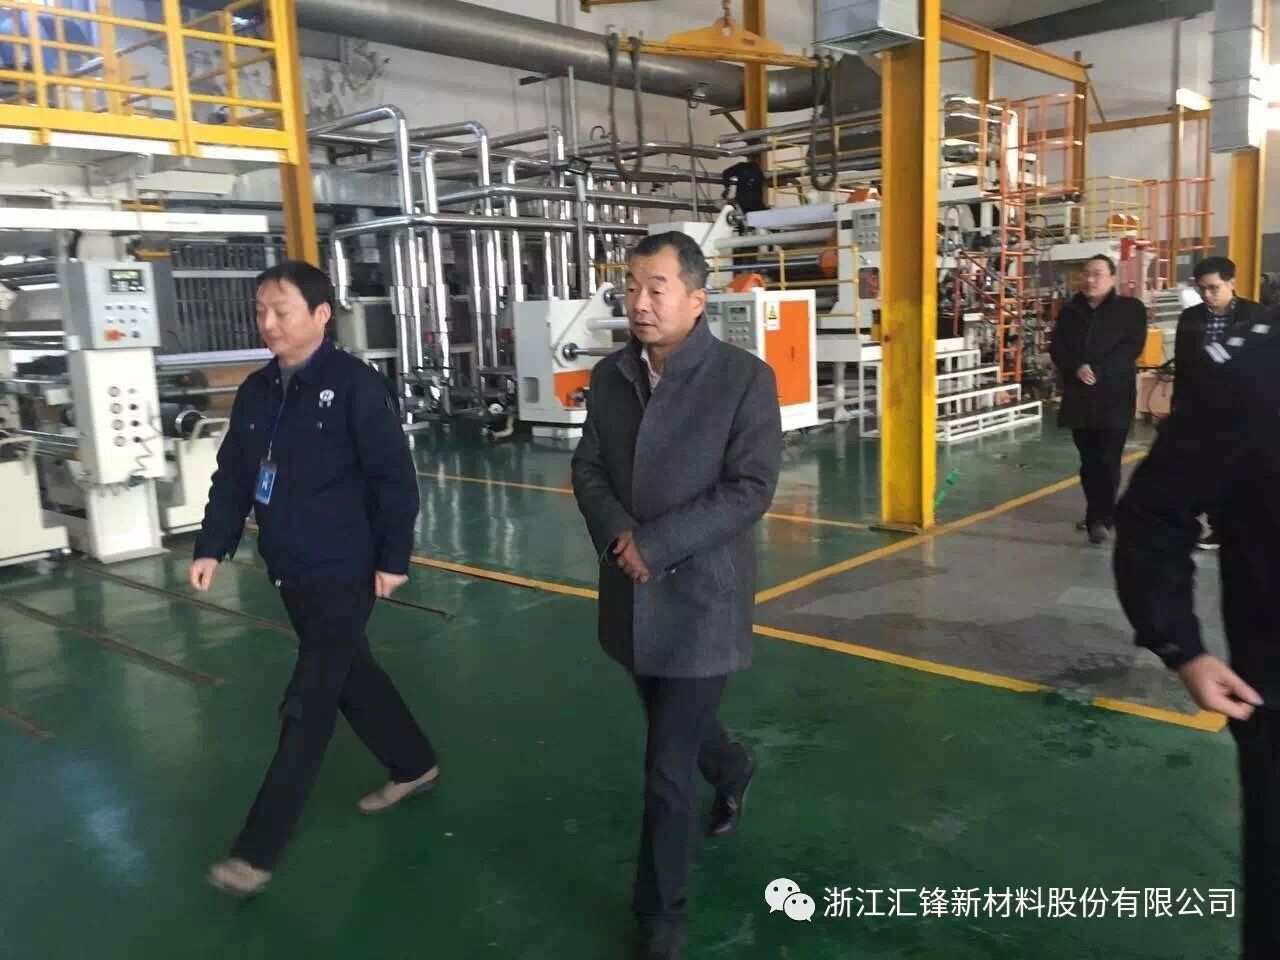 Vice Mayor Of Haining Yao Minzhong And Other City Leaders Visit Huifeng